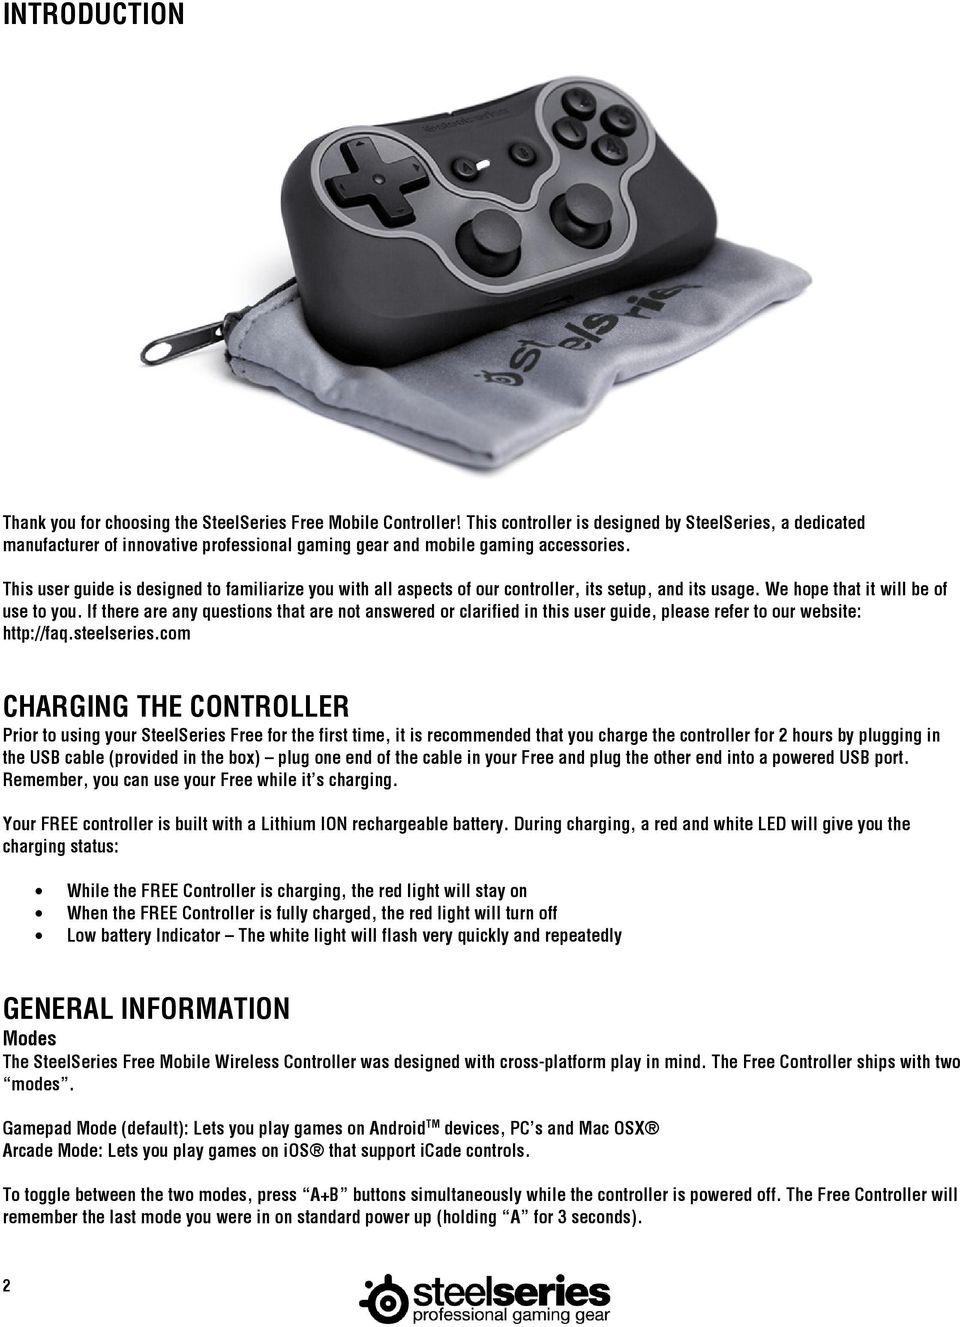 This user guide is designed to familiarize you with all aspects of our controller, its setup, and its usage. We hope that it will be of use to you.